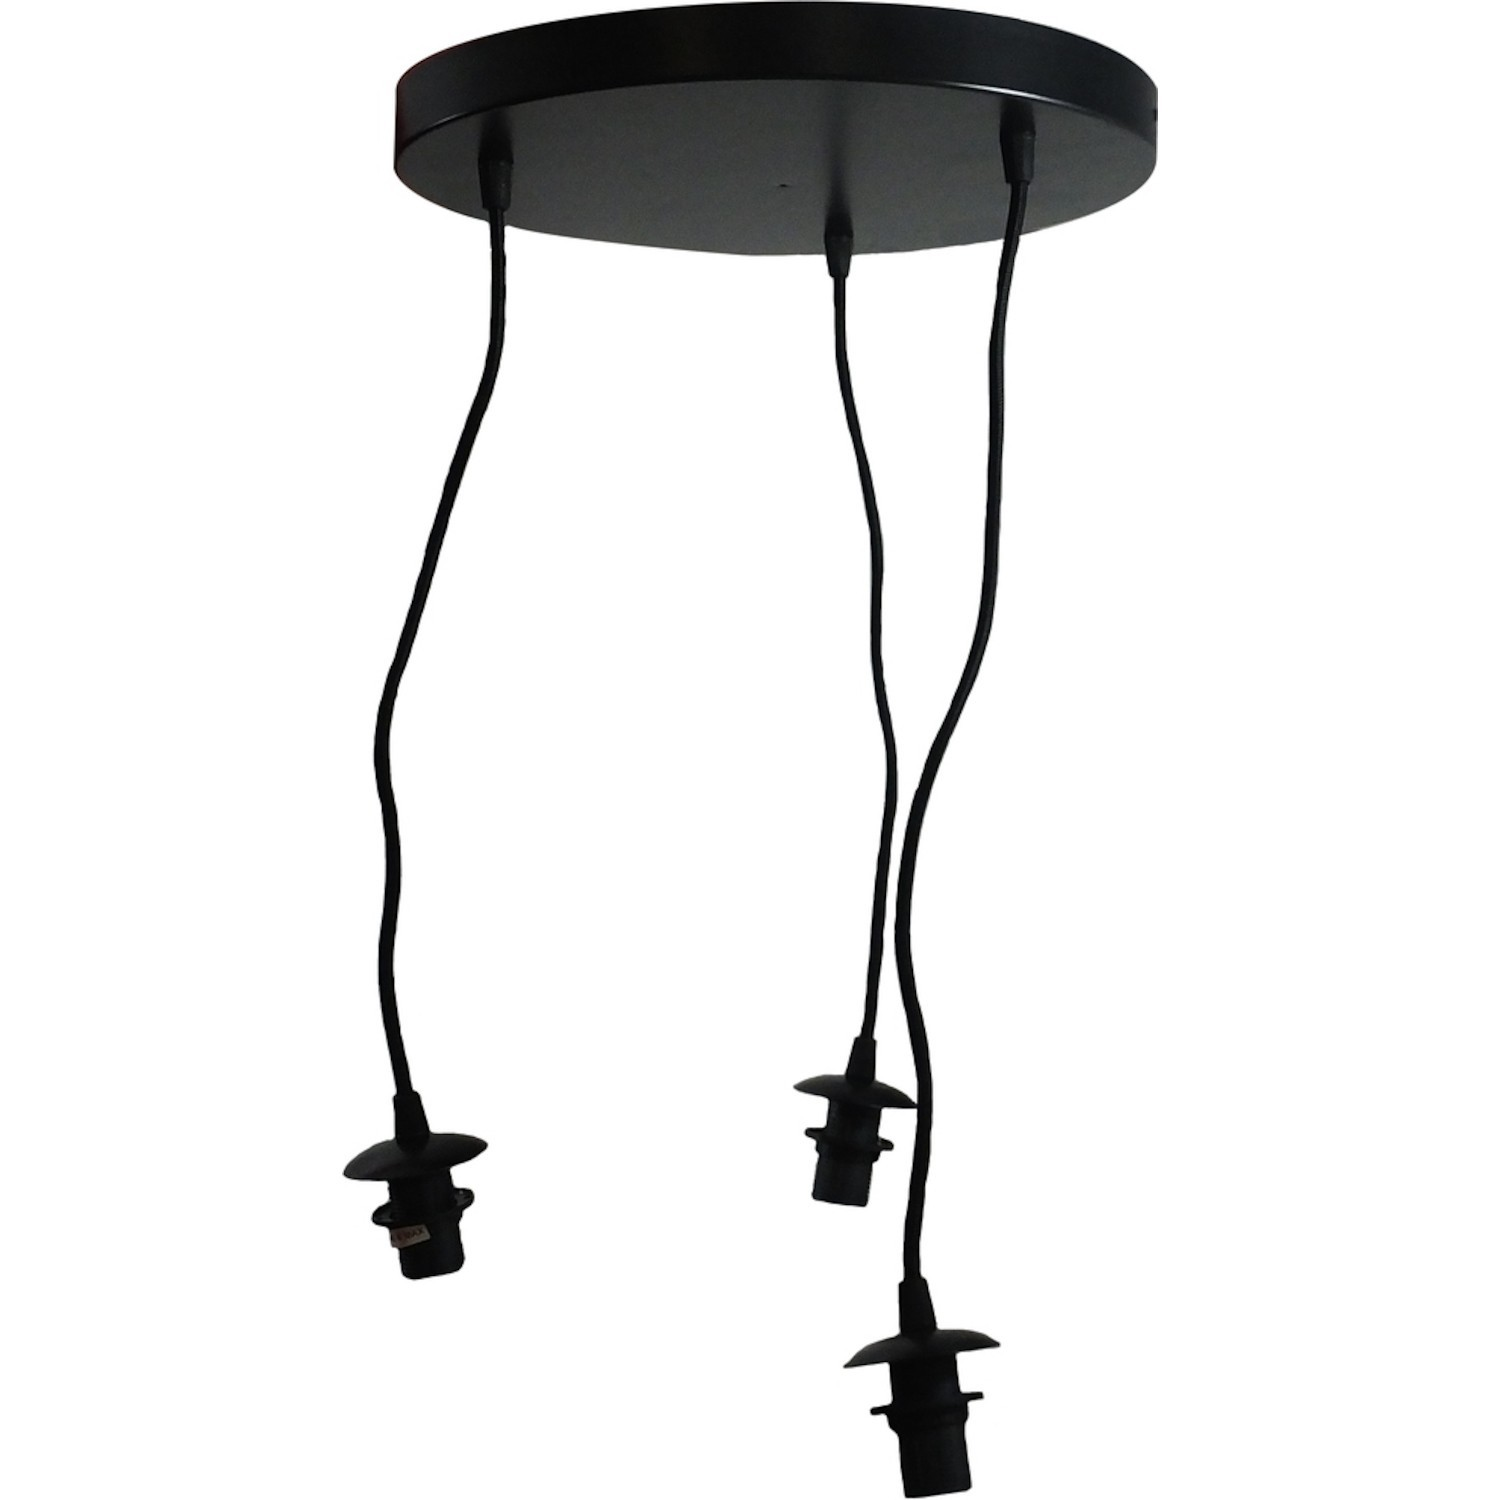 Lampe Suspension Sans Fil Suspension Basique 3 Lampes Sans Abat Jour